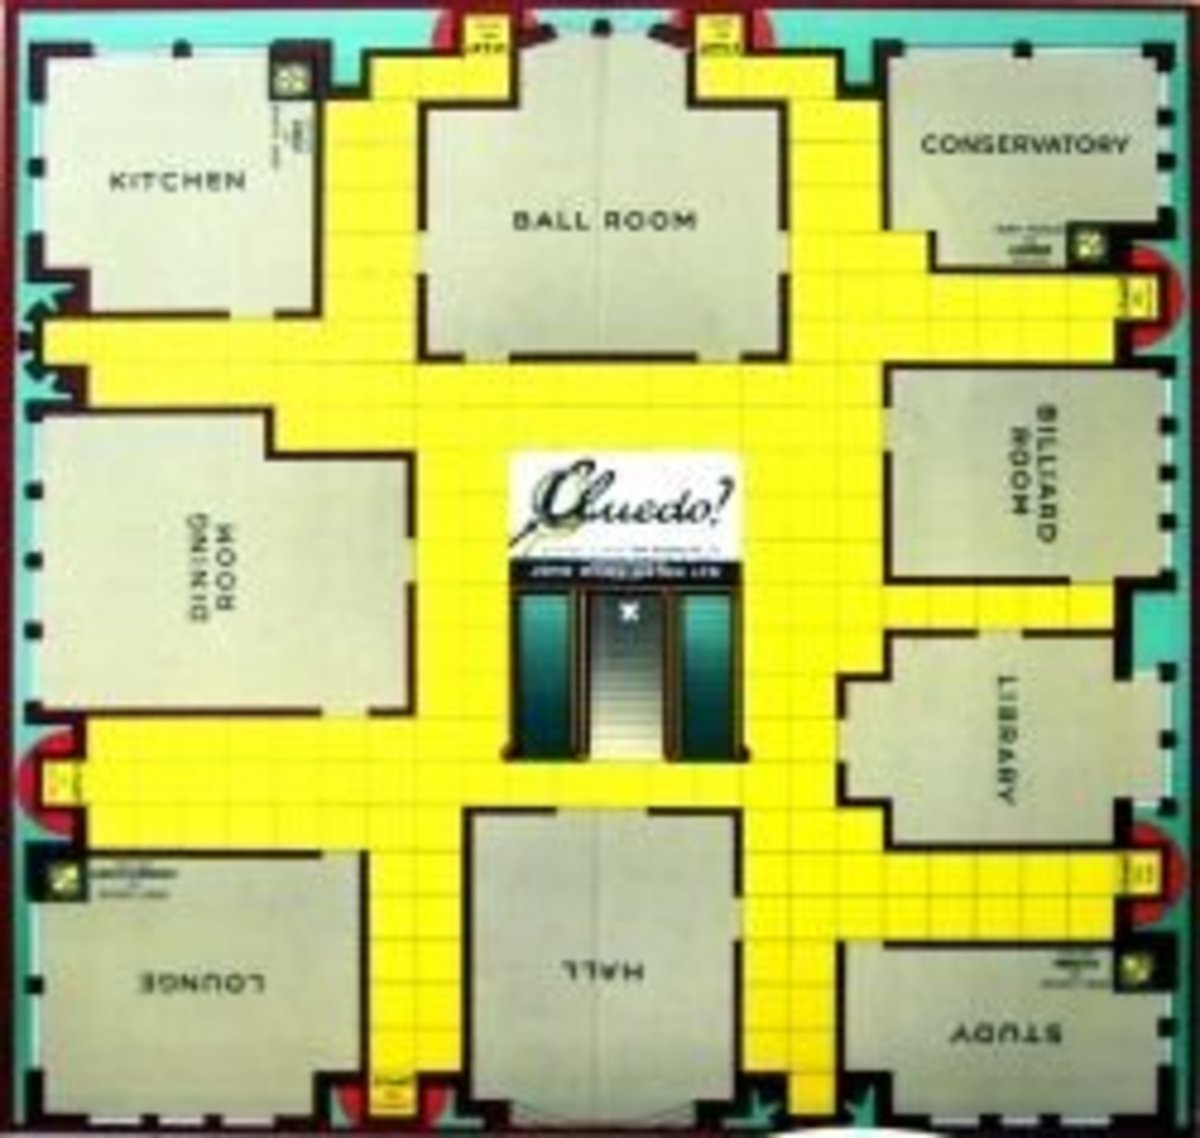 Classic Detective Game - Clue Board Game Layout